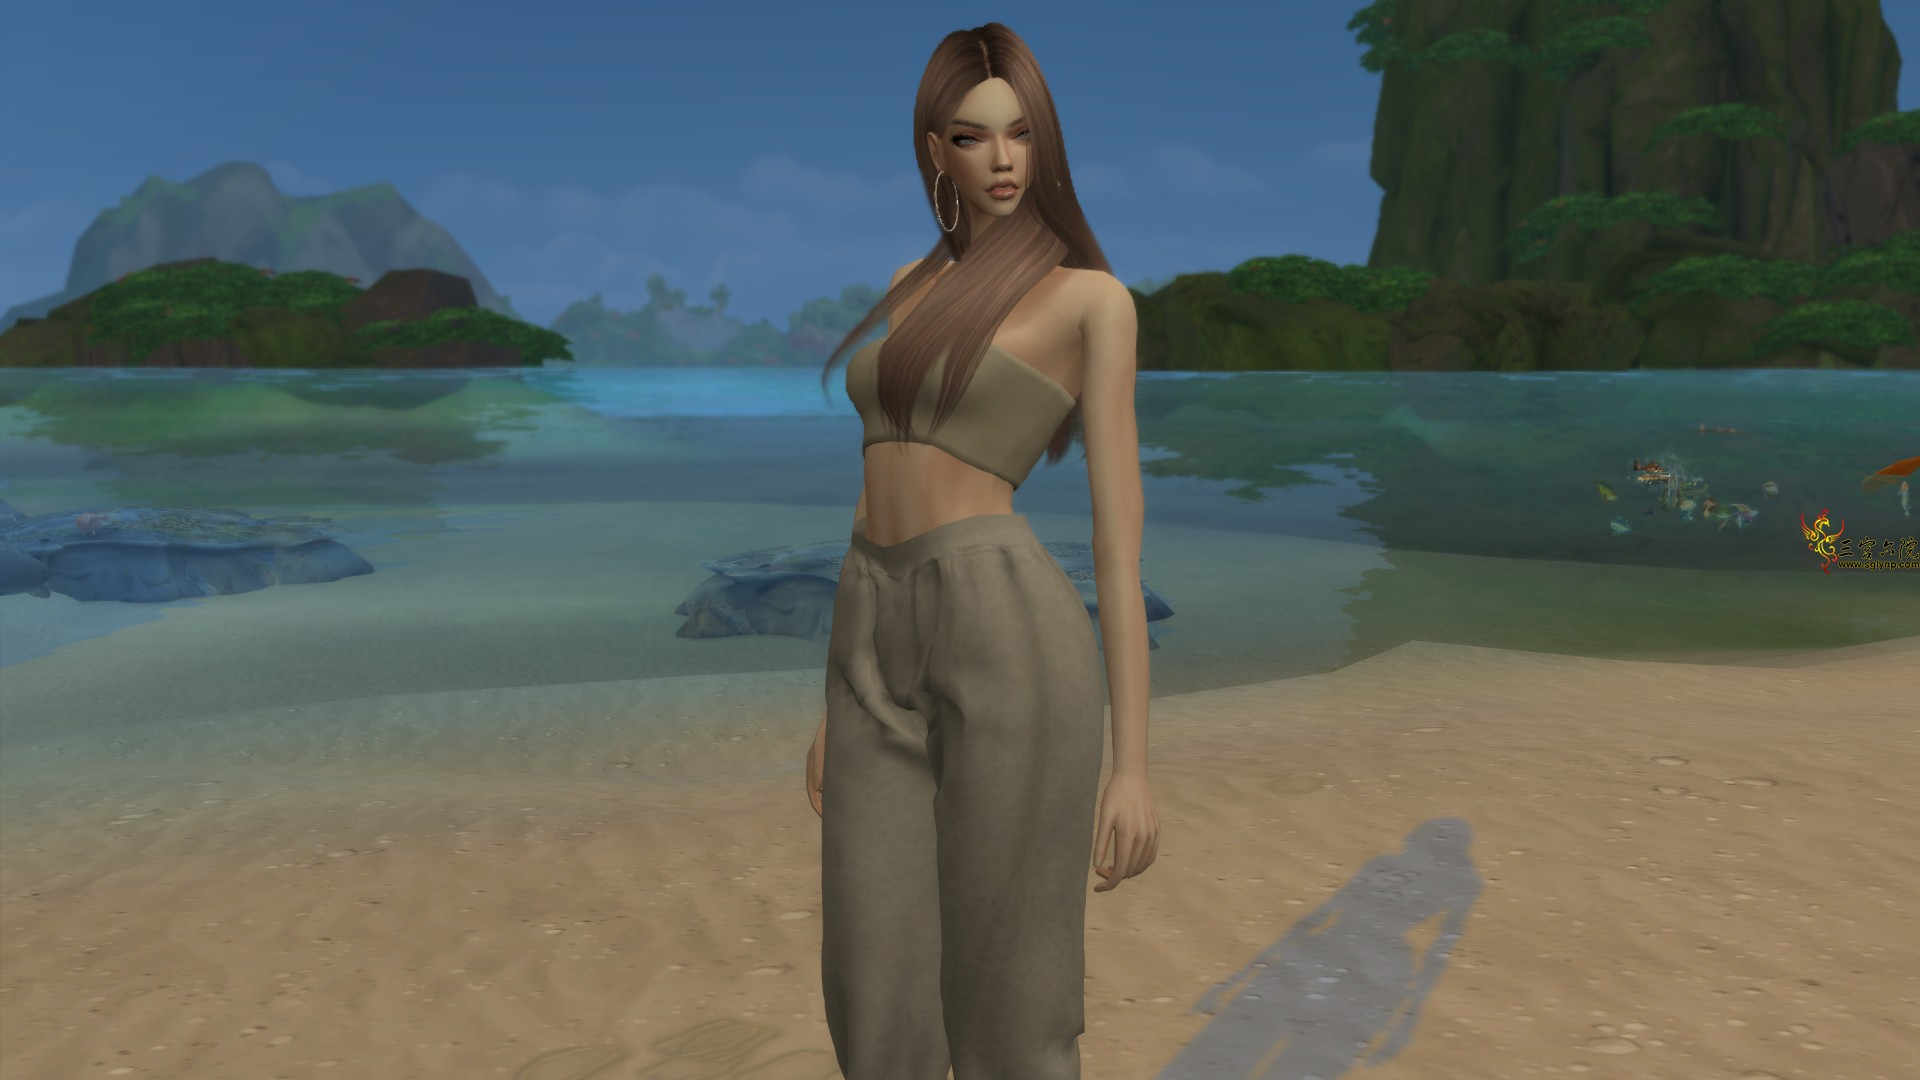 The Sims 4 2021_3_28 15_05_19.png